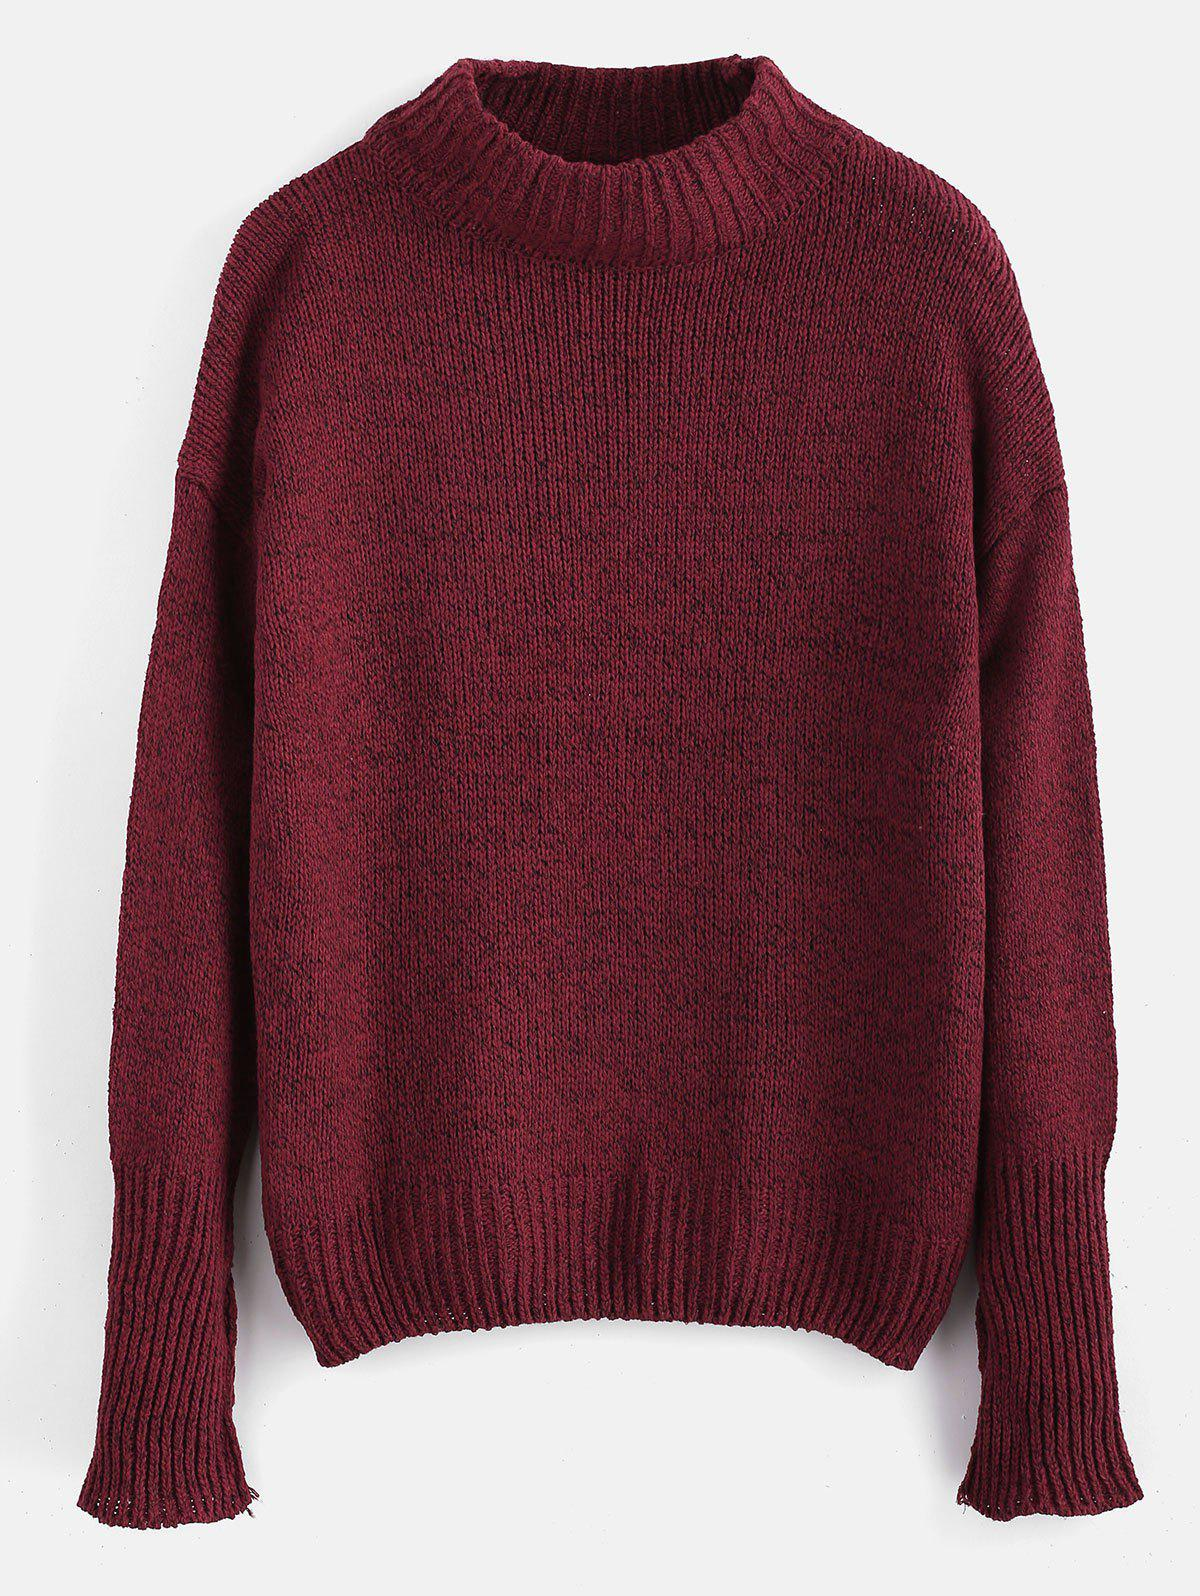 Plain Heathered Pullover Sweater